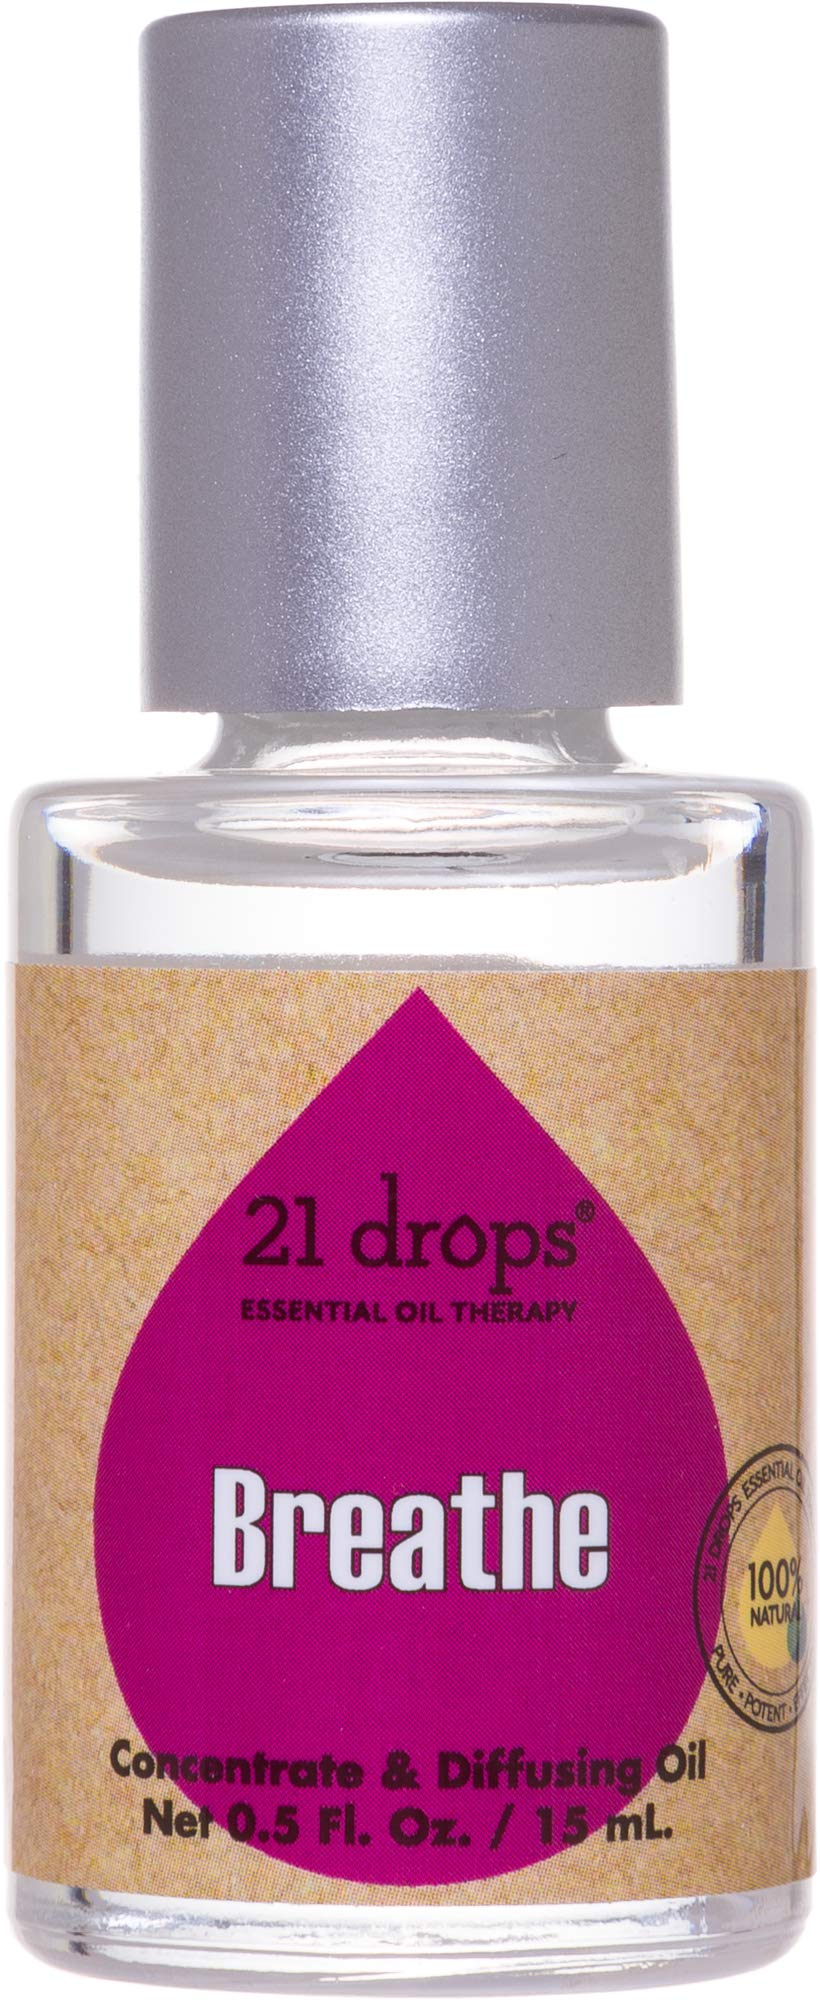 21 drops 15mL Breathe Essential Oil Aromatherapy Concentrate - Natural, Certified Organic, Pure Therapeutic Quality 1st Press Diffusing Oil Blend for Congestion by 21 drops